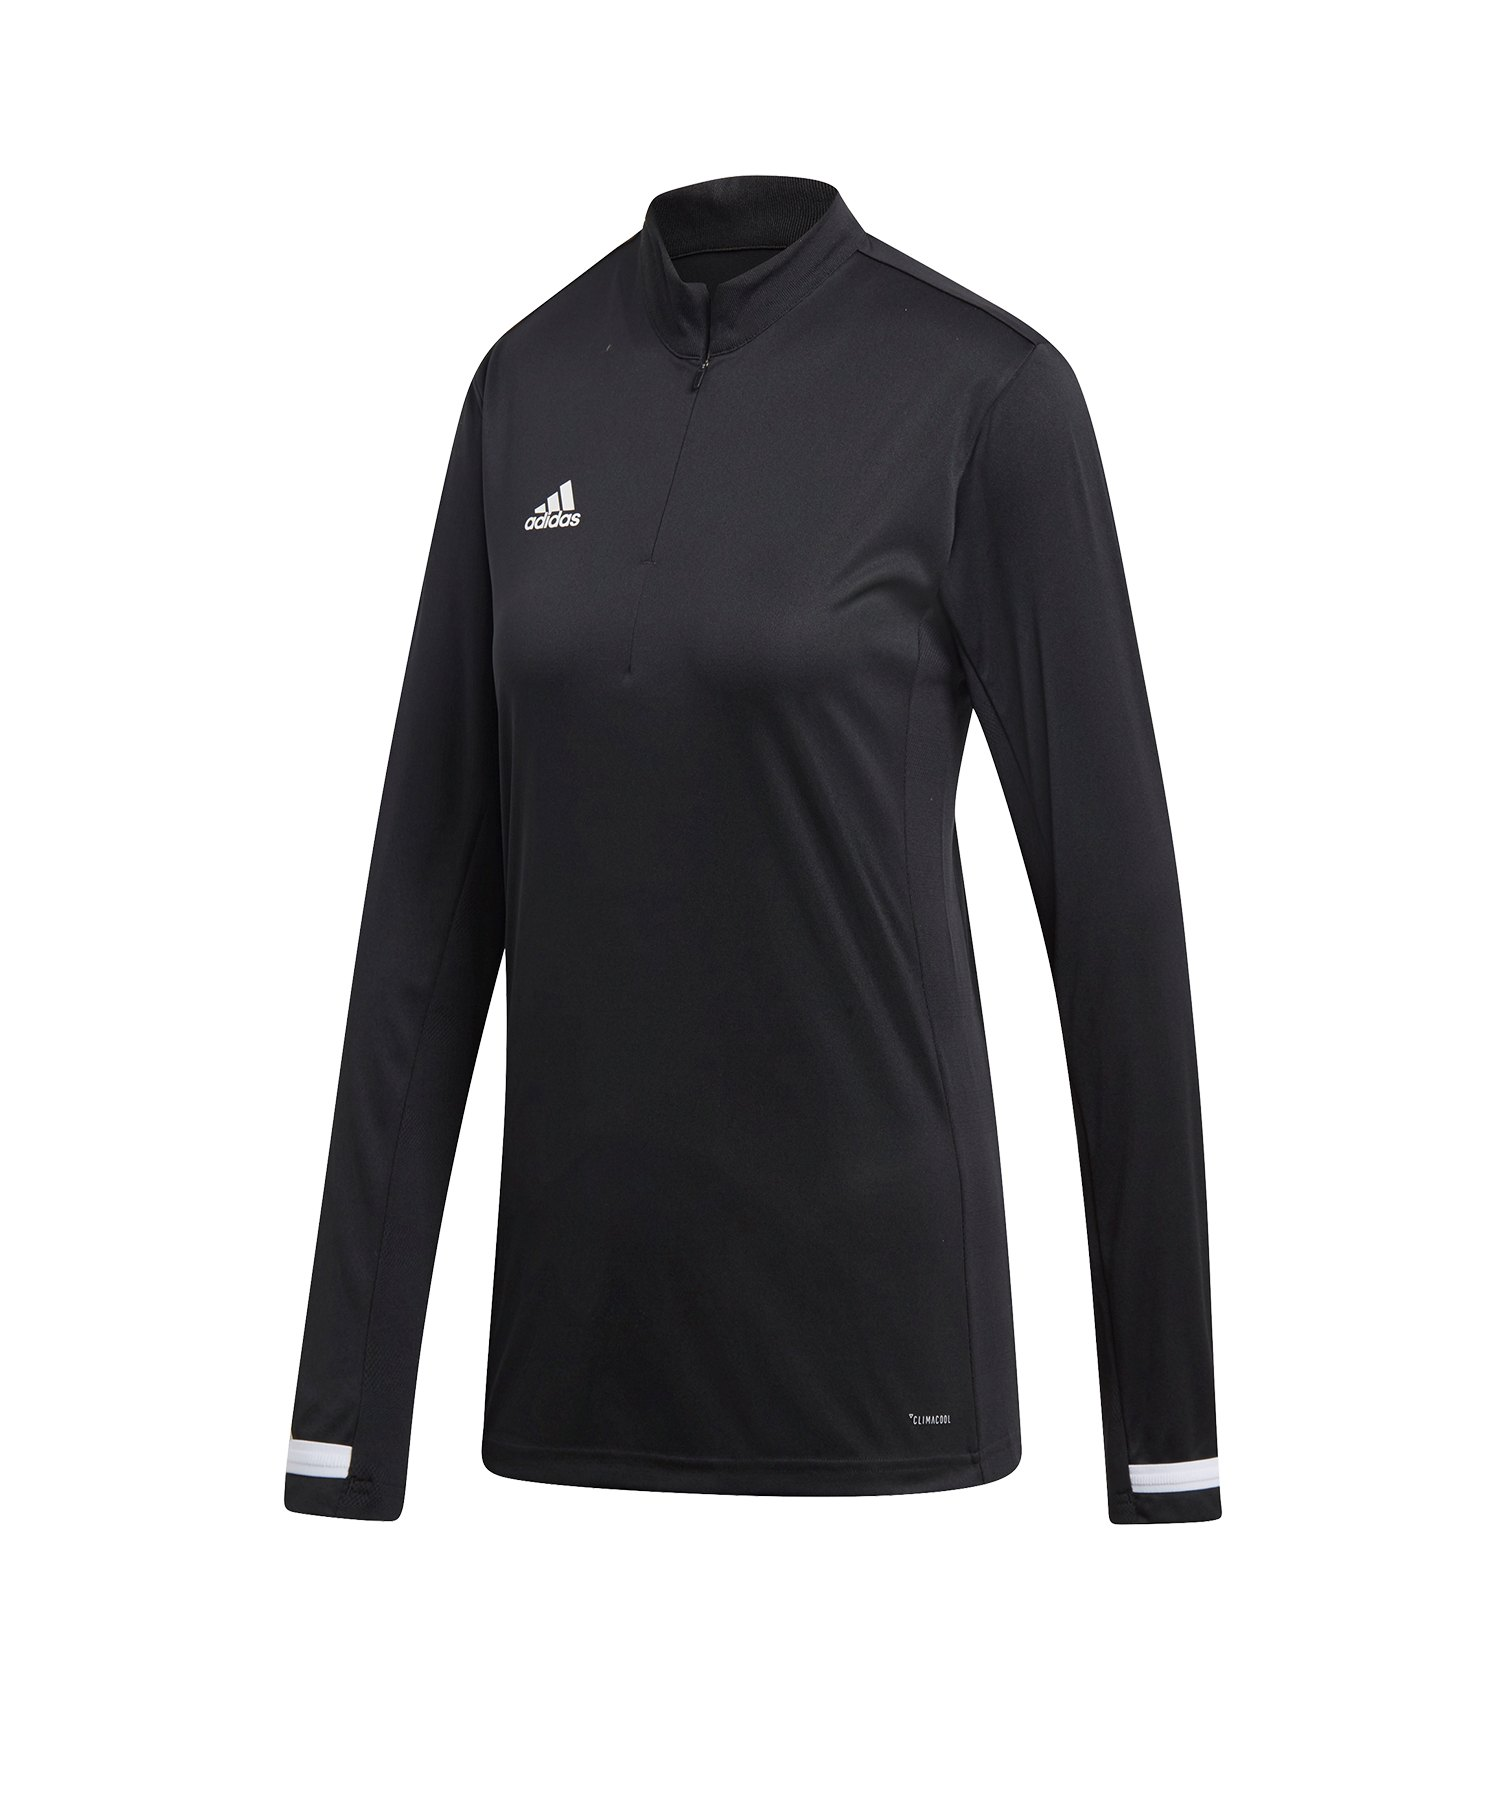 adidas Team 19 1/4 Zip Training Top Damen Schwarz - schwarz